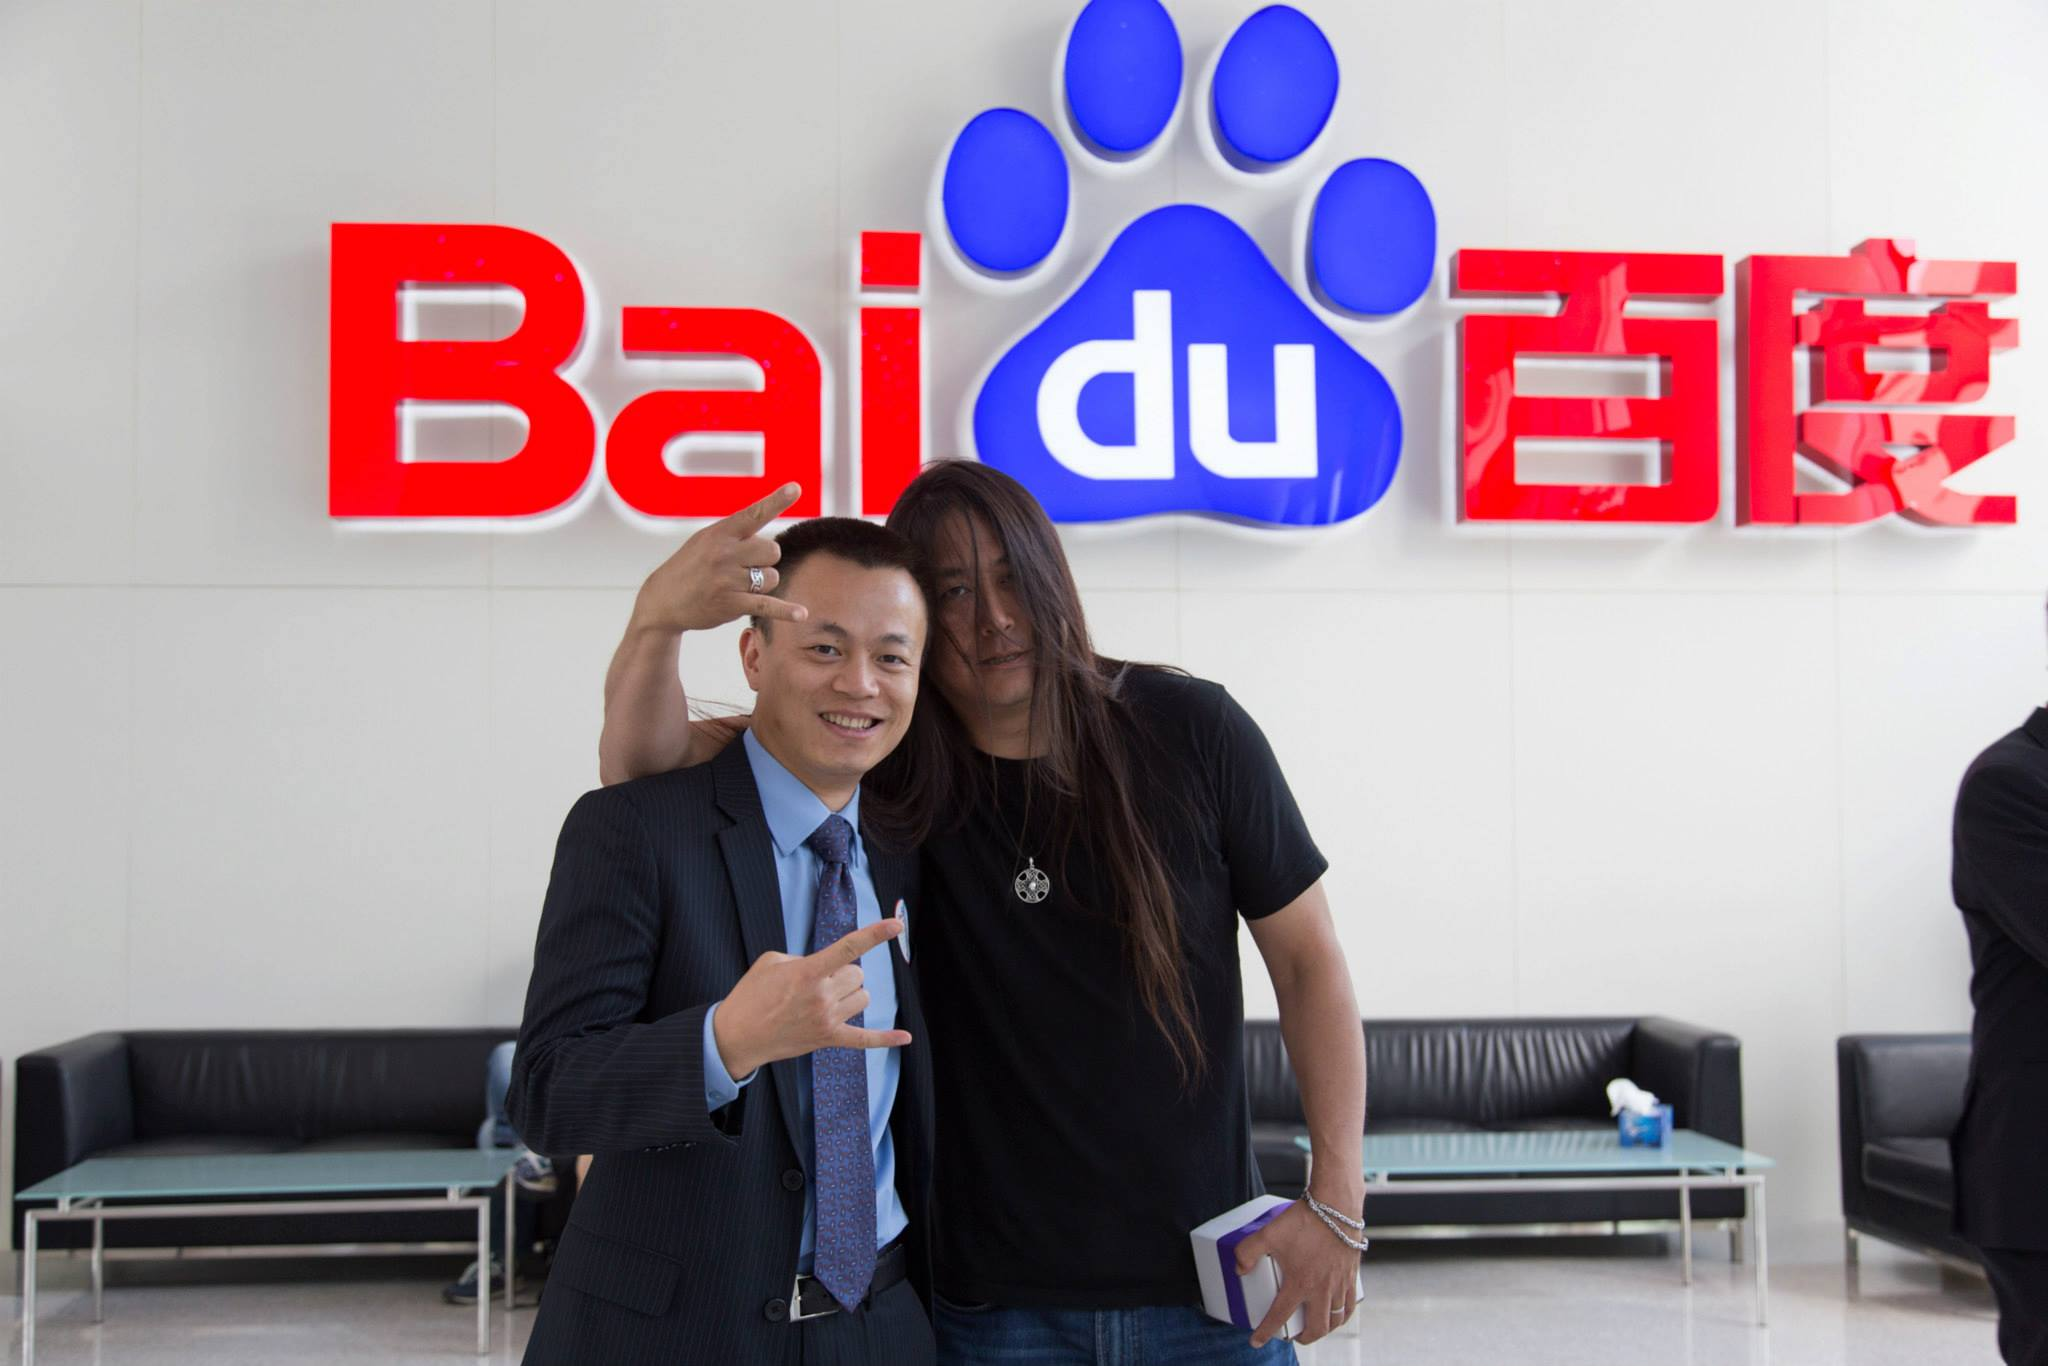 Shaosong + Kaiser at Baidu | Photo by Wilson Carletti (All Rights Reserved)